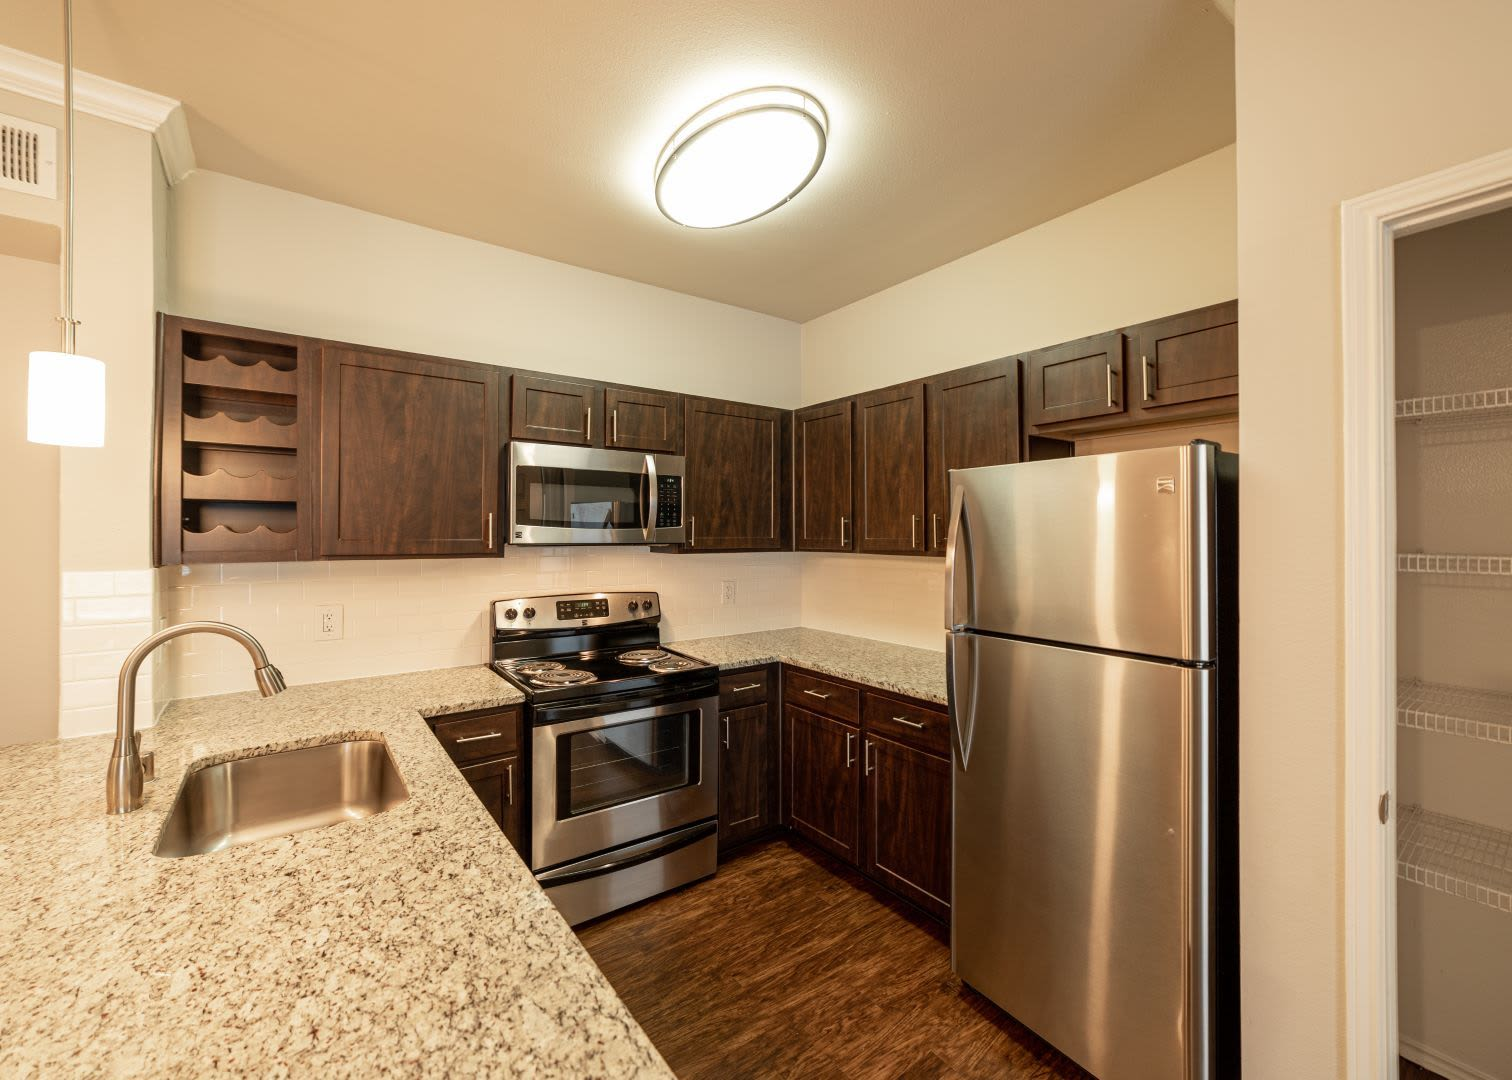 Bright kitchen with wood style floors at Marquis at Stonebriar in Frisco, Texas